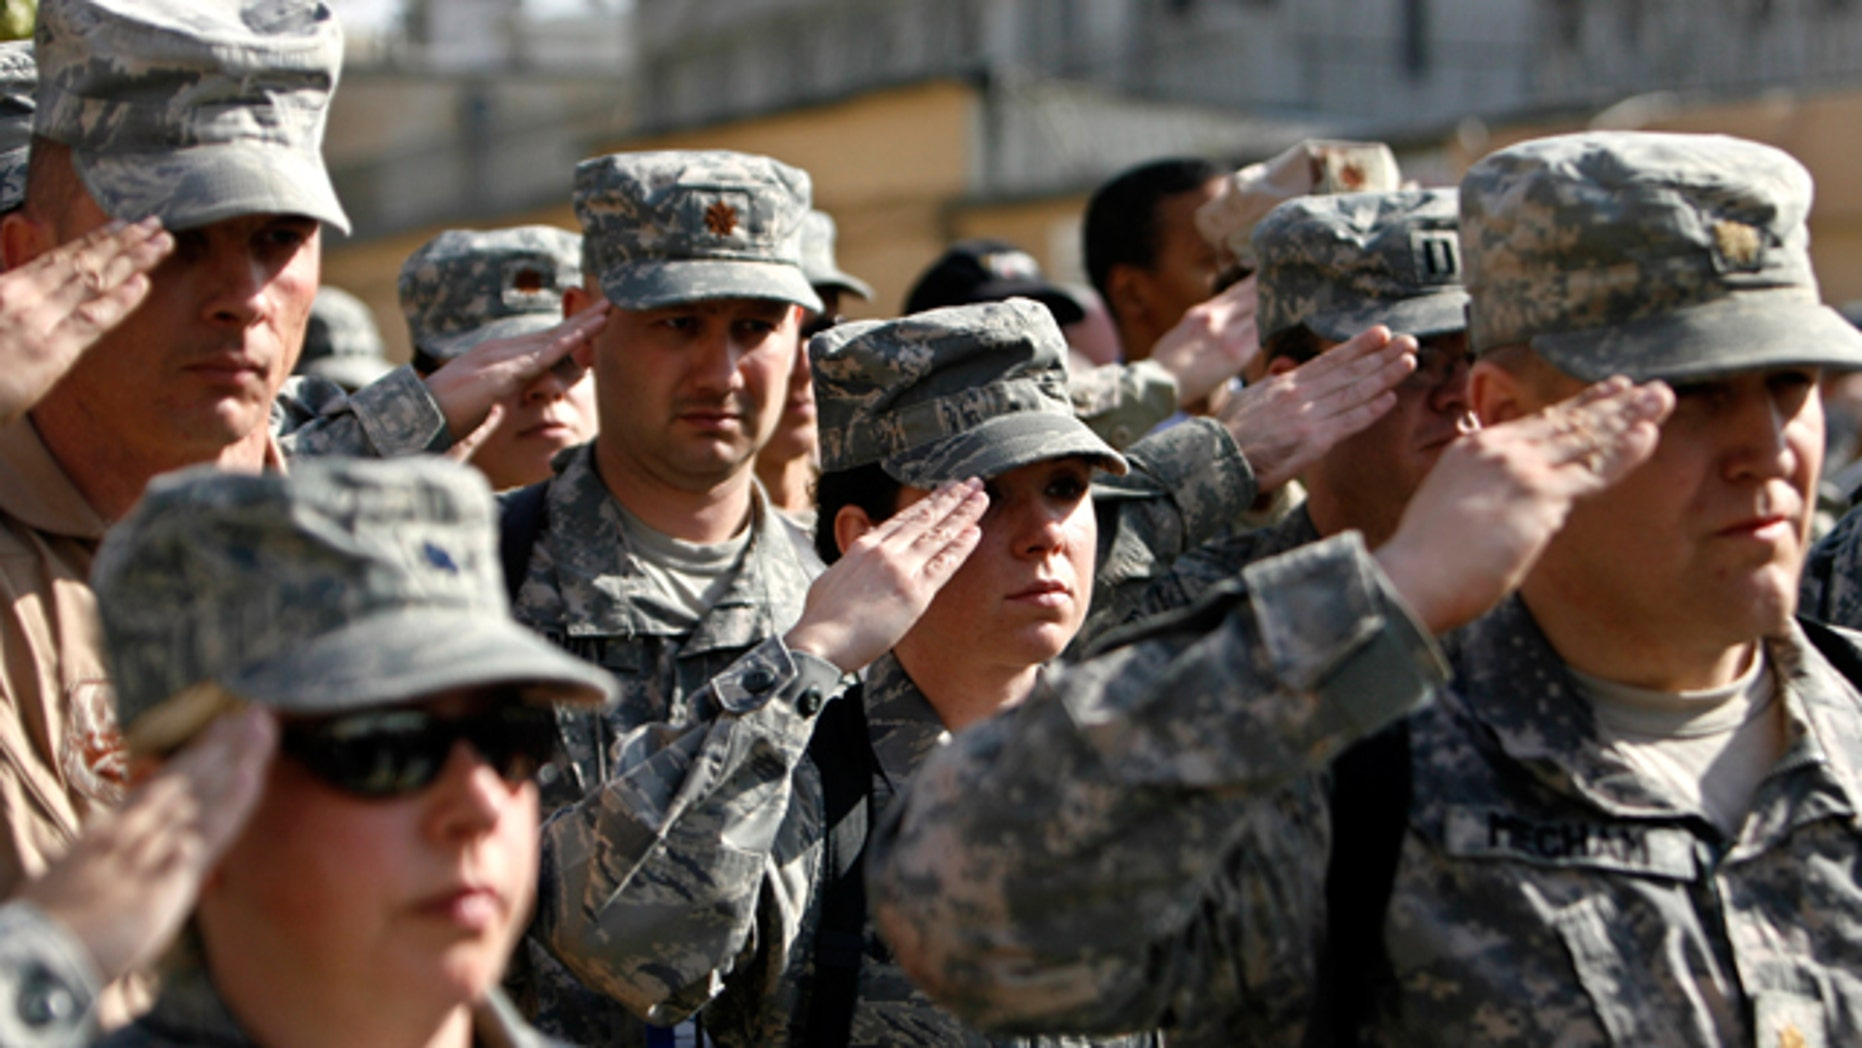 FILE: Nov. 11, 2008: US soldiers of Combined Security Transition Command salute during a Veterans Day ceremony in Kabul, Afghanistan.